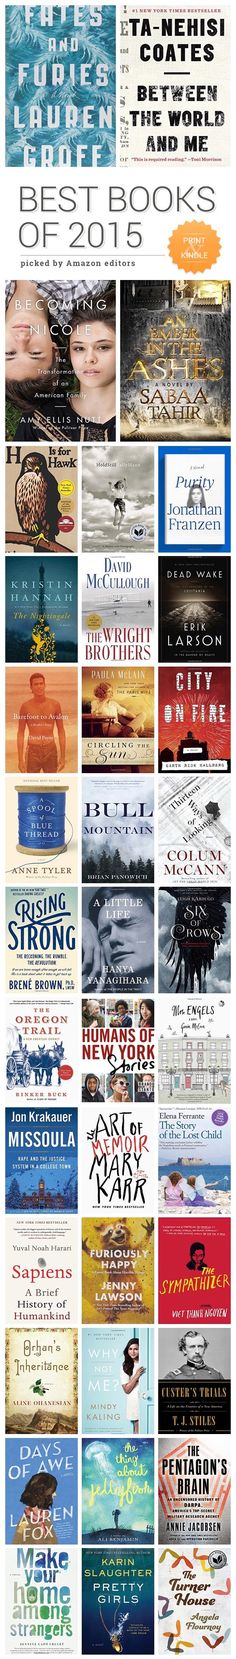 Amazon has announced Top 100 #books of 2015 - what are your favorites?  Read more ⇢